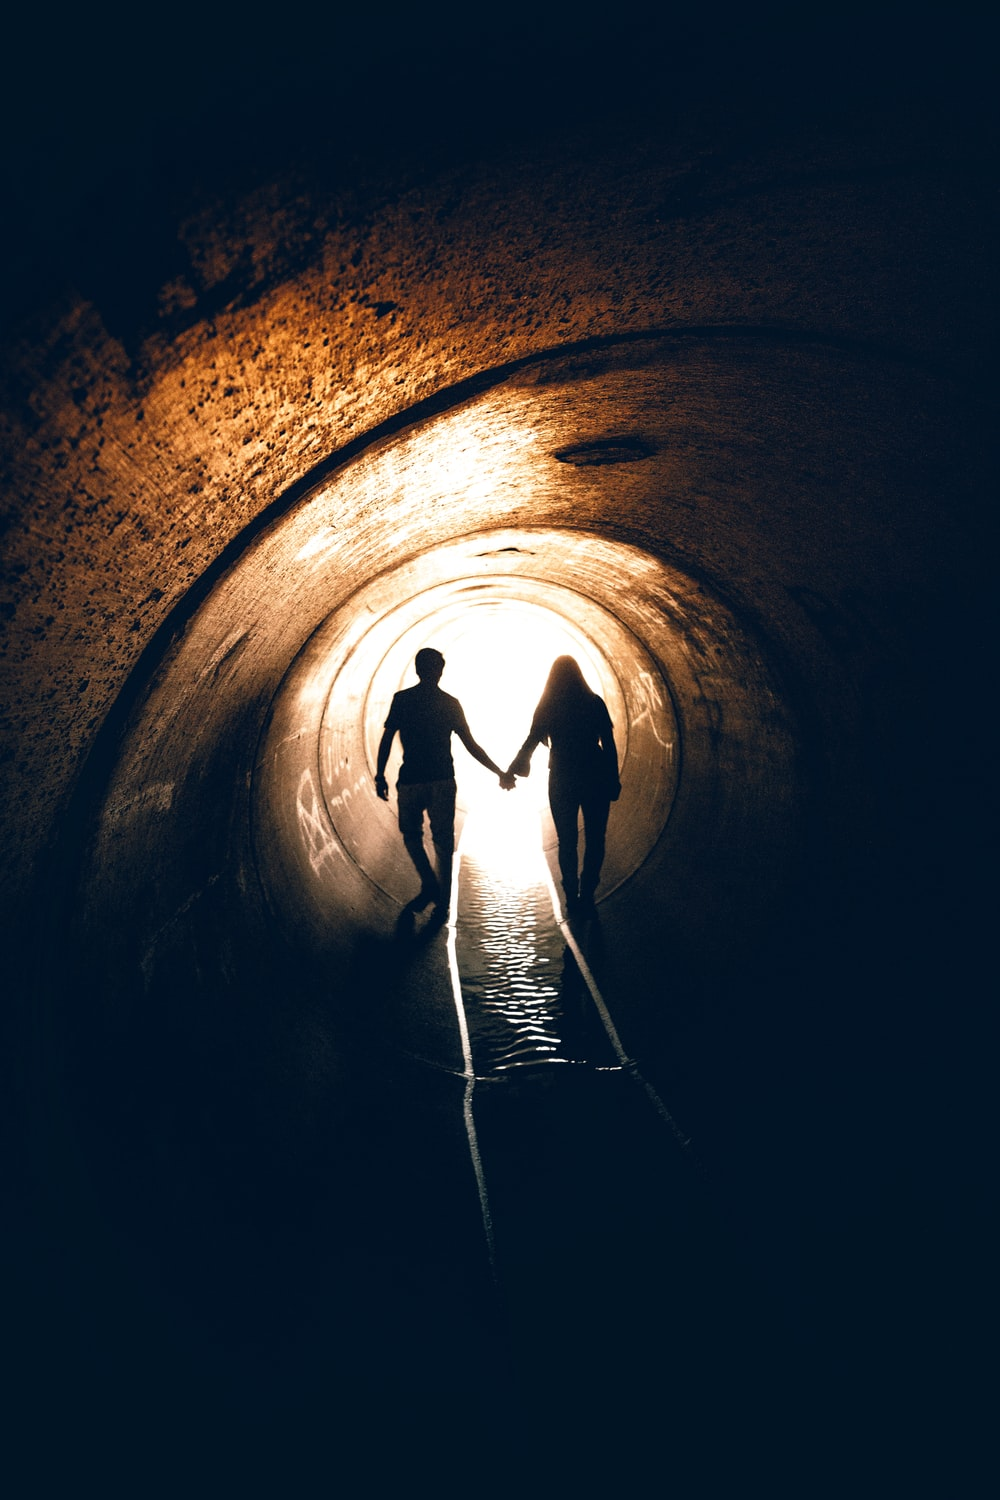 silhouette of man and woman inside tunnel